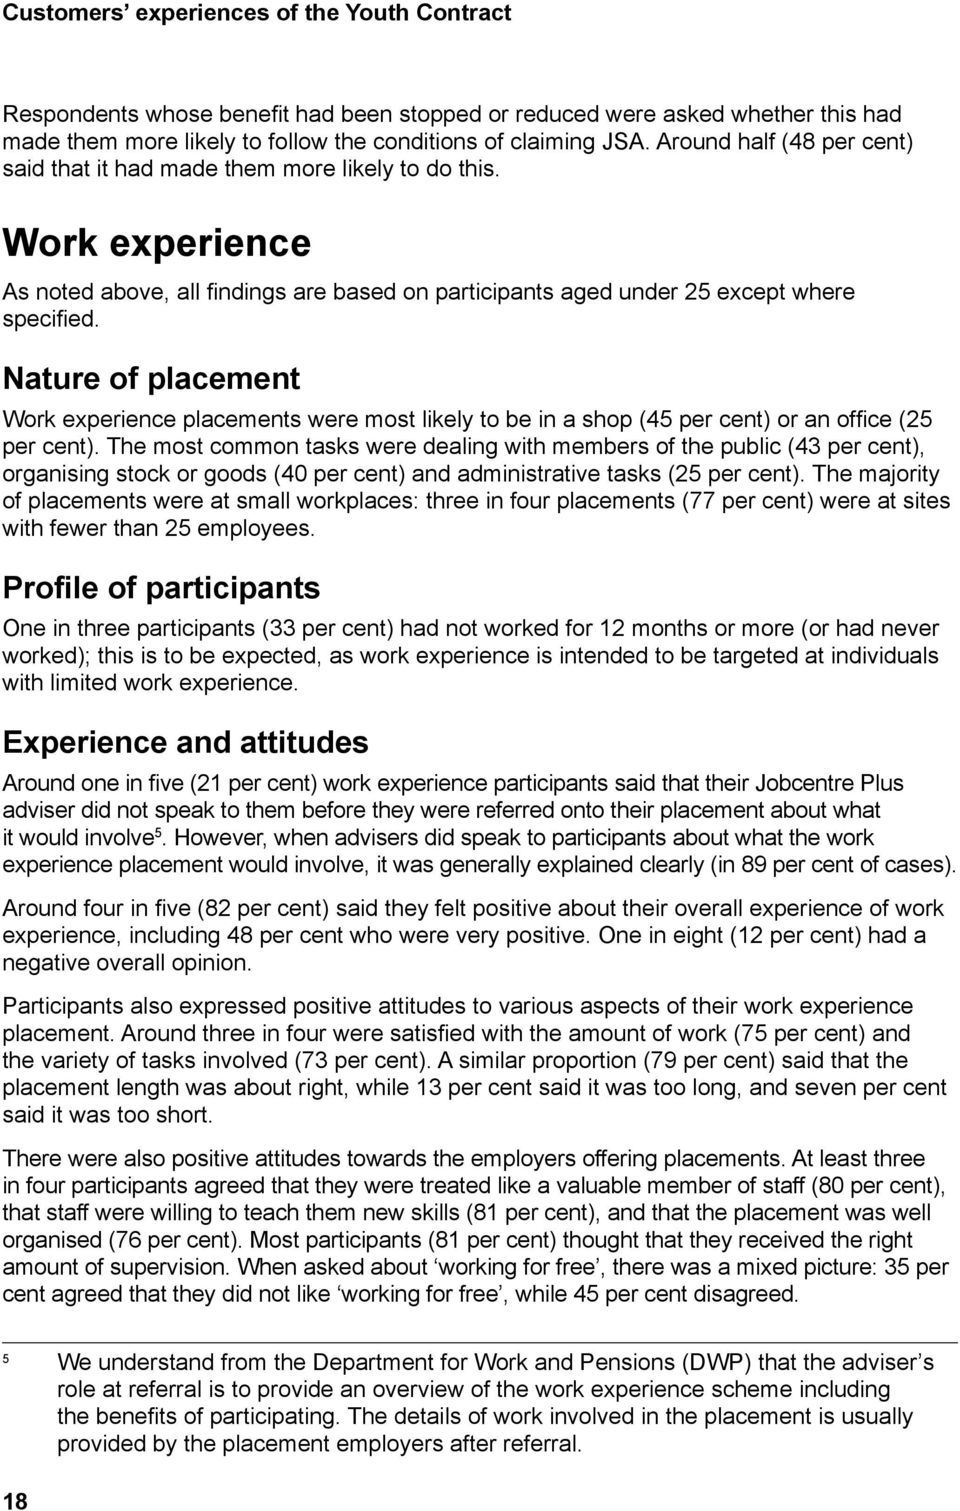 Nature of placement Work experience placements were most likely to be in a shop (45 per cent) or an office (25 per cent).